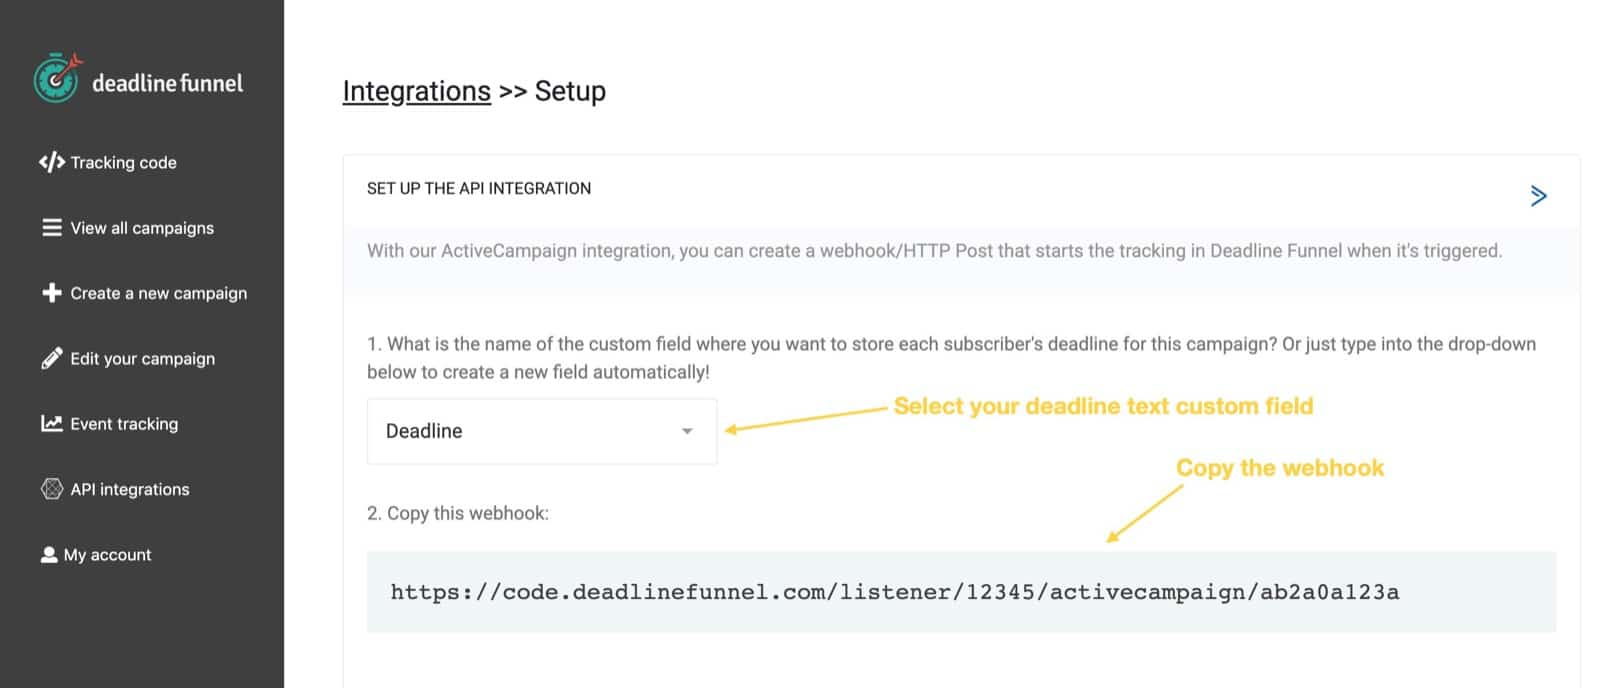 Select custom field and copy webhook